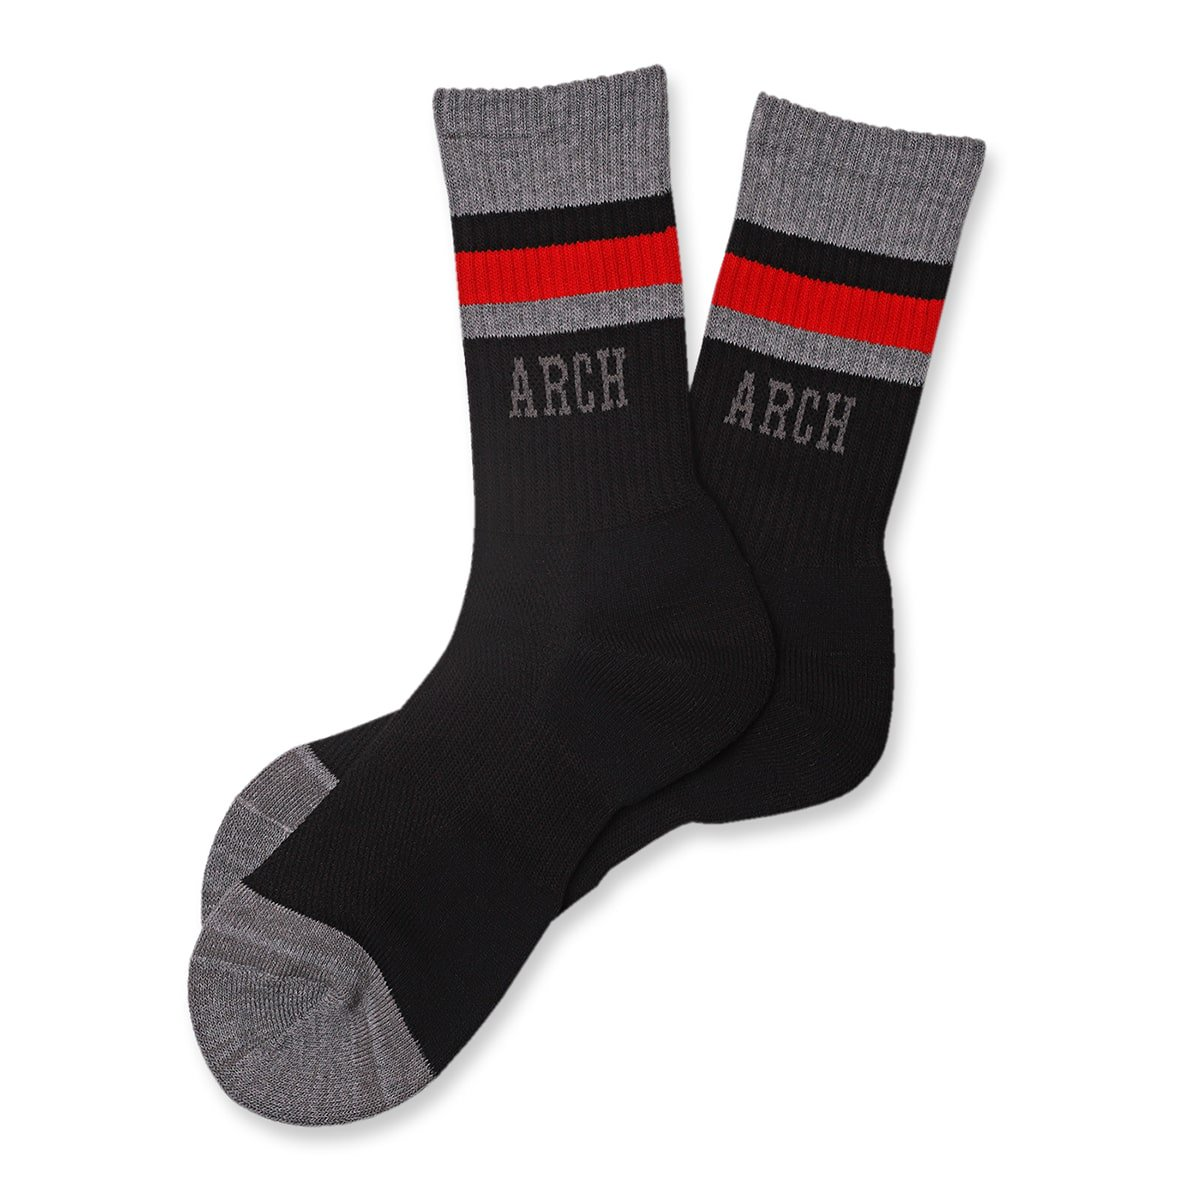 TL sport crew mid. socks【black/heather gray】